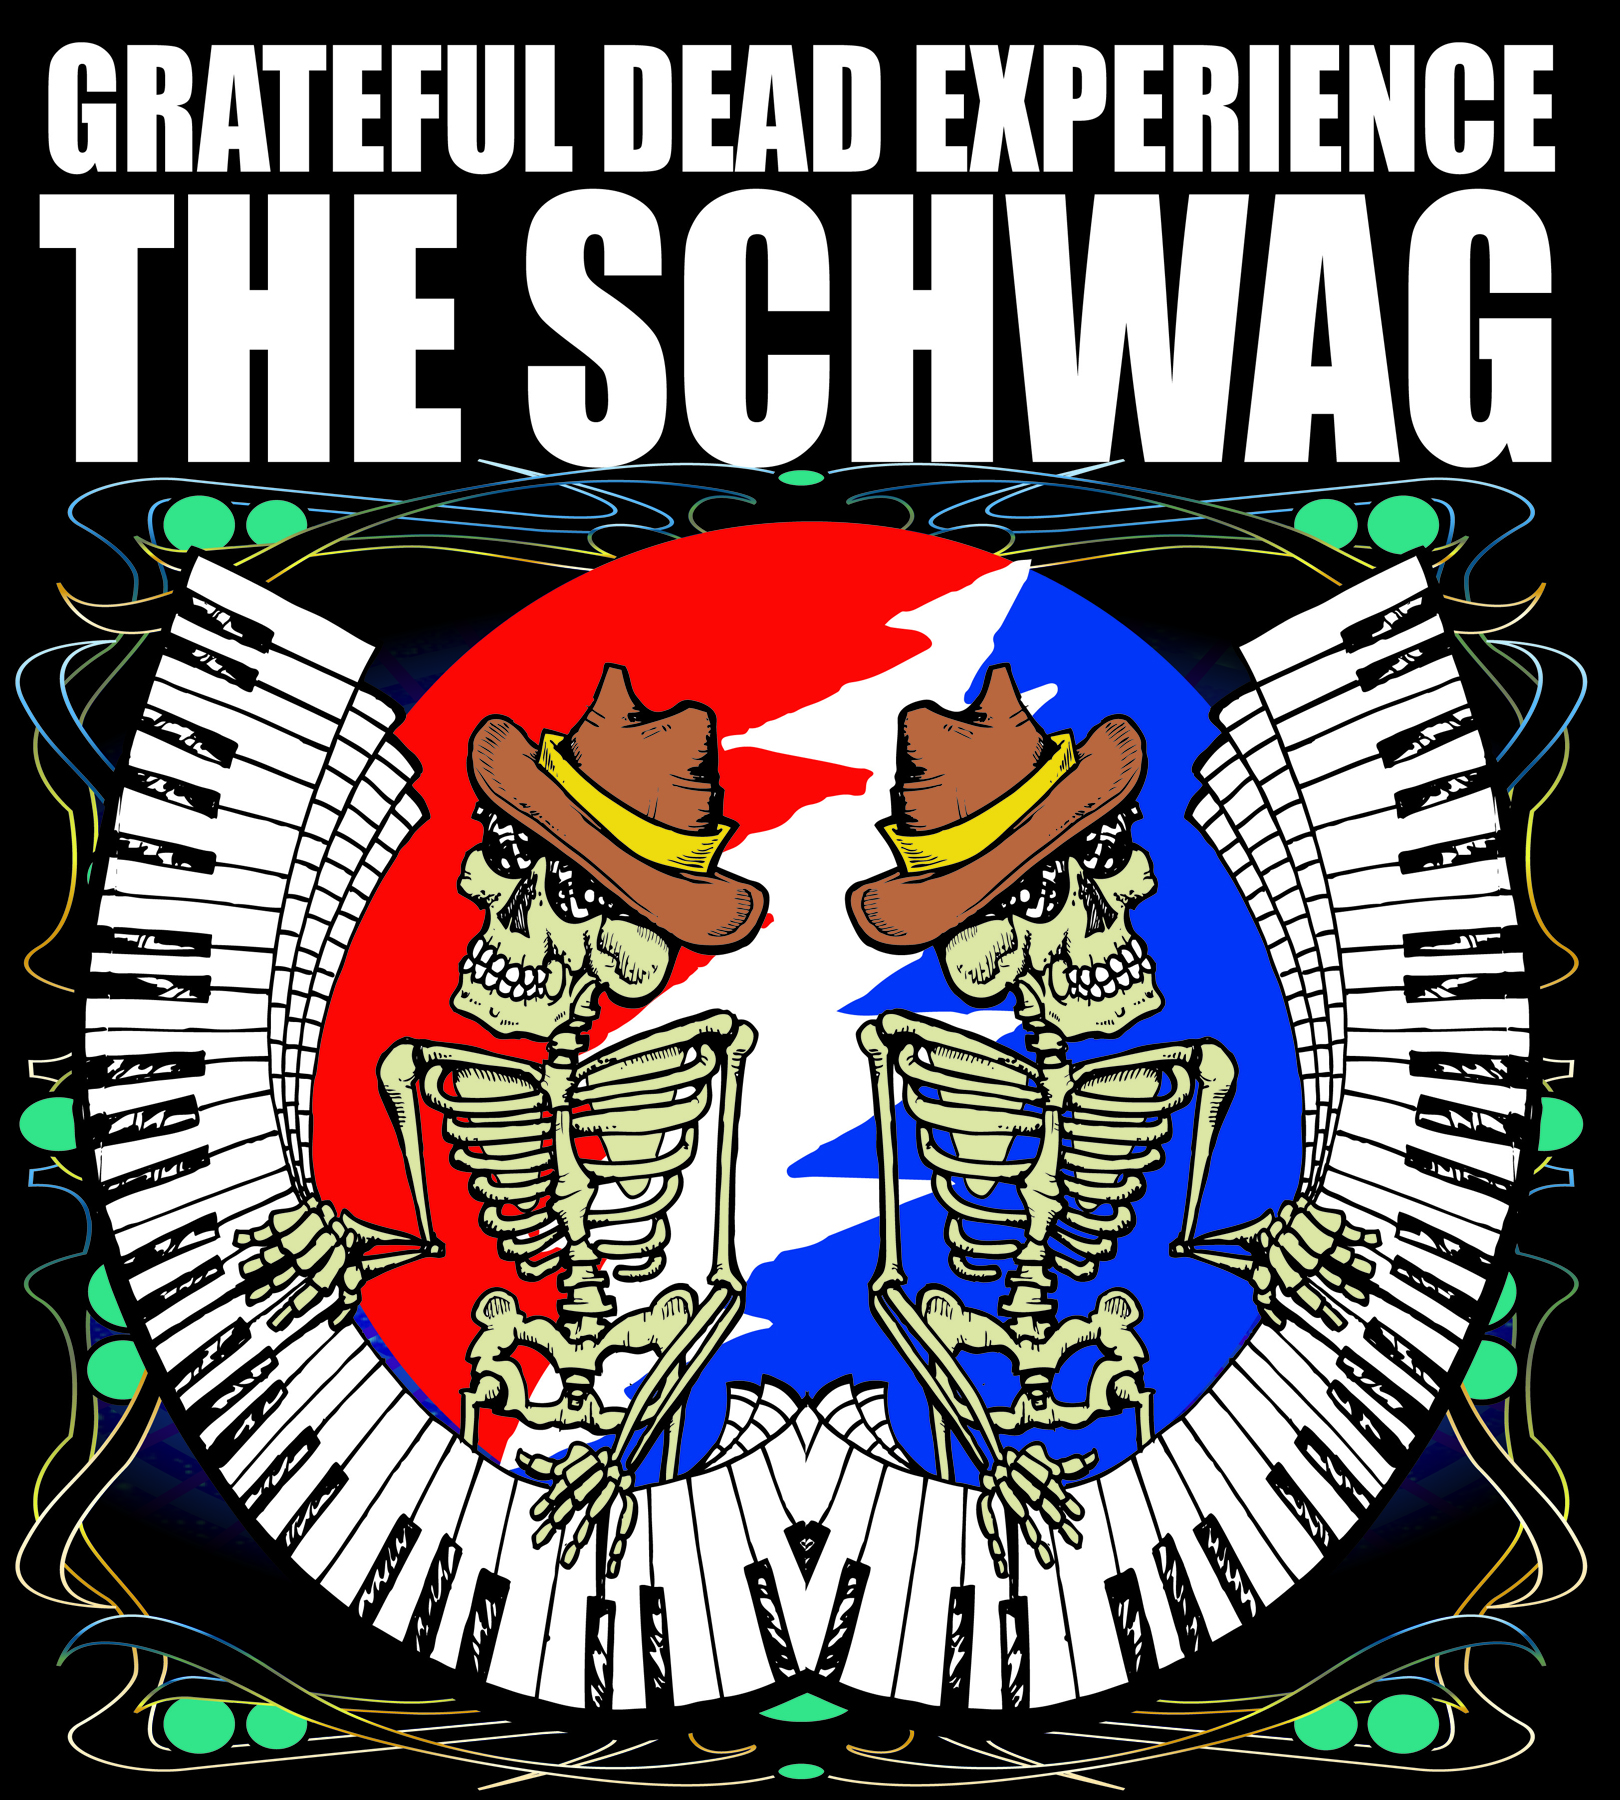 Grateful Dead Experience - THE SCHWAG show poster